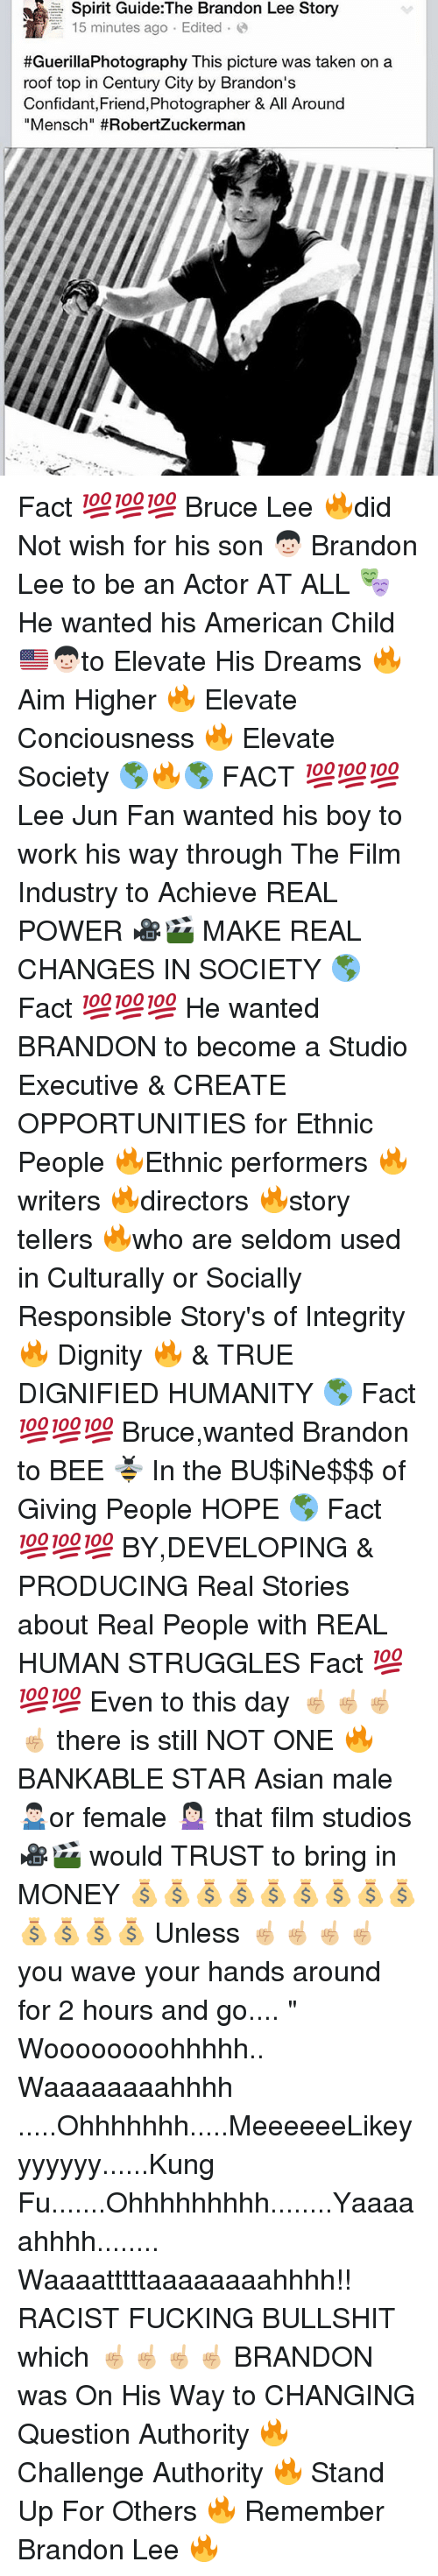 """lee jun fan: Spirit Guide:The Brandon Lee Story  15 minutes ago . Edited-e  #GuerillaPhotography This picture was taken on a  roof top in Century City by Brandon's  Confidant,Friend,Photographer & All Around  Mensch"""" Fact 💯💯💯 Bruce Lee 🔥did Not wish for his son 👦🏻 Brandon Lee to be an Actor AT ALL 🎭 He wanted his American Child 🇺🇸👦🏻to Elevate His Dreams 🔥 Aim Higher 🔥 Elevate Conciousness 🔥 Elevate Society 🌎🔥🌎 FACT 💯💯💯 Lee Jun Fan wanted his boy to work his way through The Film Industry to Achieve REAL POWER 🎥🎬 MAKE REAL CHANGES IN SOCIETY 🌎 Fact 💯💯💯 He wanted BRANDON to become a Studio Executive & CREATE OPPORTUNITIES for Ethnic People 🔥Ethnic performers 🔥writers 🔥directors 🔥story tellers 🔥who are seldom used in Culturally or Socially Responsible Story's of Integrity 🔥 Dignity 🔥 & TRUE DIGNIFIED HUMANITY 🌎 Fact 💯💯💯 Bruce,wanted Brandon to BEE 🐝 In the BU$iNe$$$ of Giving People HOPE 🌎 Fact 💯💯💯 BY,DEVELOPING & PRODUCING Real Stories about Real People with REAL HUMAN STRUGGLES Fact 💯💯💯 Even to this day ☝🏼☝🏼☝🏼☝🏼 there is still NOT ONE 🔥 BANKABLE STAR Asian male 🤷🏻♂️or female 🤷🏻♀️ that film studios 🎥🎬 would TRUST to bring in MONEY 💰💰💰💰💰💰💰💰💰💰💰💰💰 Unless ☝🏼☝🏼☝🏼☝🏼 you wave your hands around for 2 hours and go.... """" Woooooooohhhhh.. Waaaaaaaahhhh .....Ohhhhhhh.....MeeeeeeLikeyyyyyyy......Kung Fu.......Ohhhhhhhhh........Yaaaaahhhh........ Waaaatttttaaaaaaaahhhh!! RACIST FUCKING BULLSHIT which ☝🏼☝🏼☝🏼☝🏼 BRANDON was On His Way to CHANGING Question Authority 🔥 Challenge Authority 🔥 Stand Up For Others 🔥 Remember Brandon Lee 🔥"""